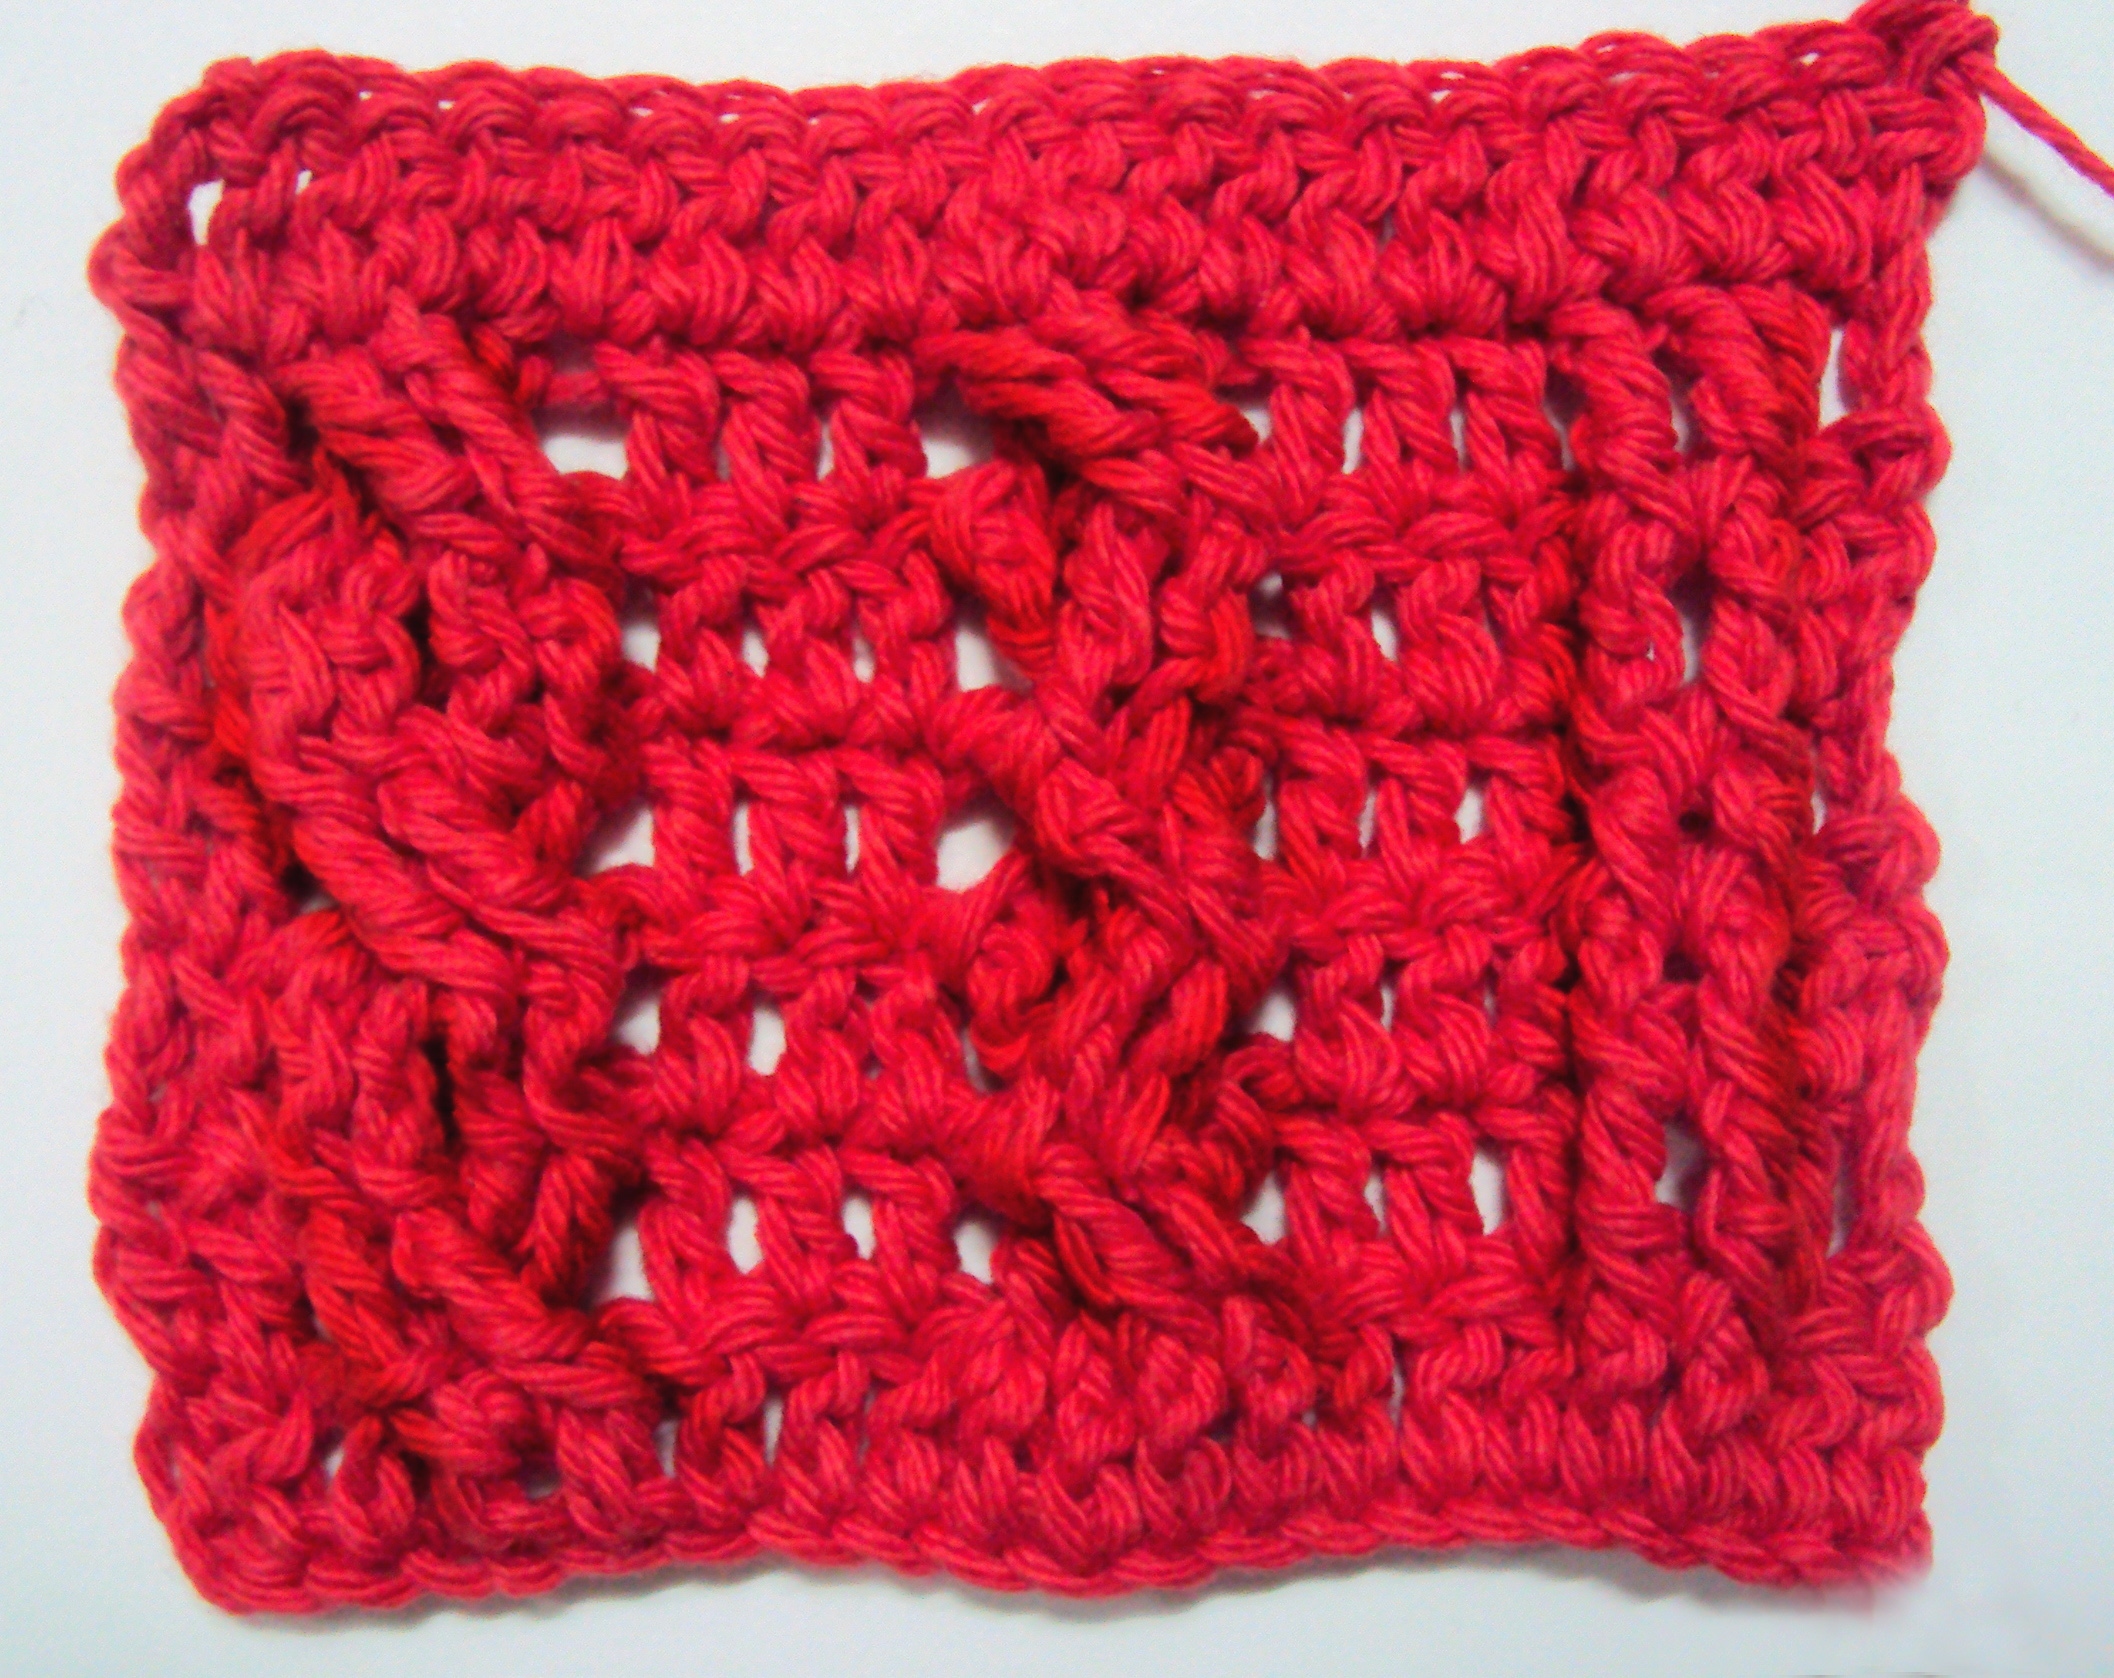 Crochet Patterns Tutorial : ... How to Crochet: Cable Stitches - Crochet Patterns, Tutorials and News